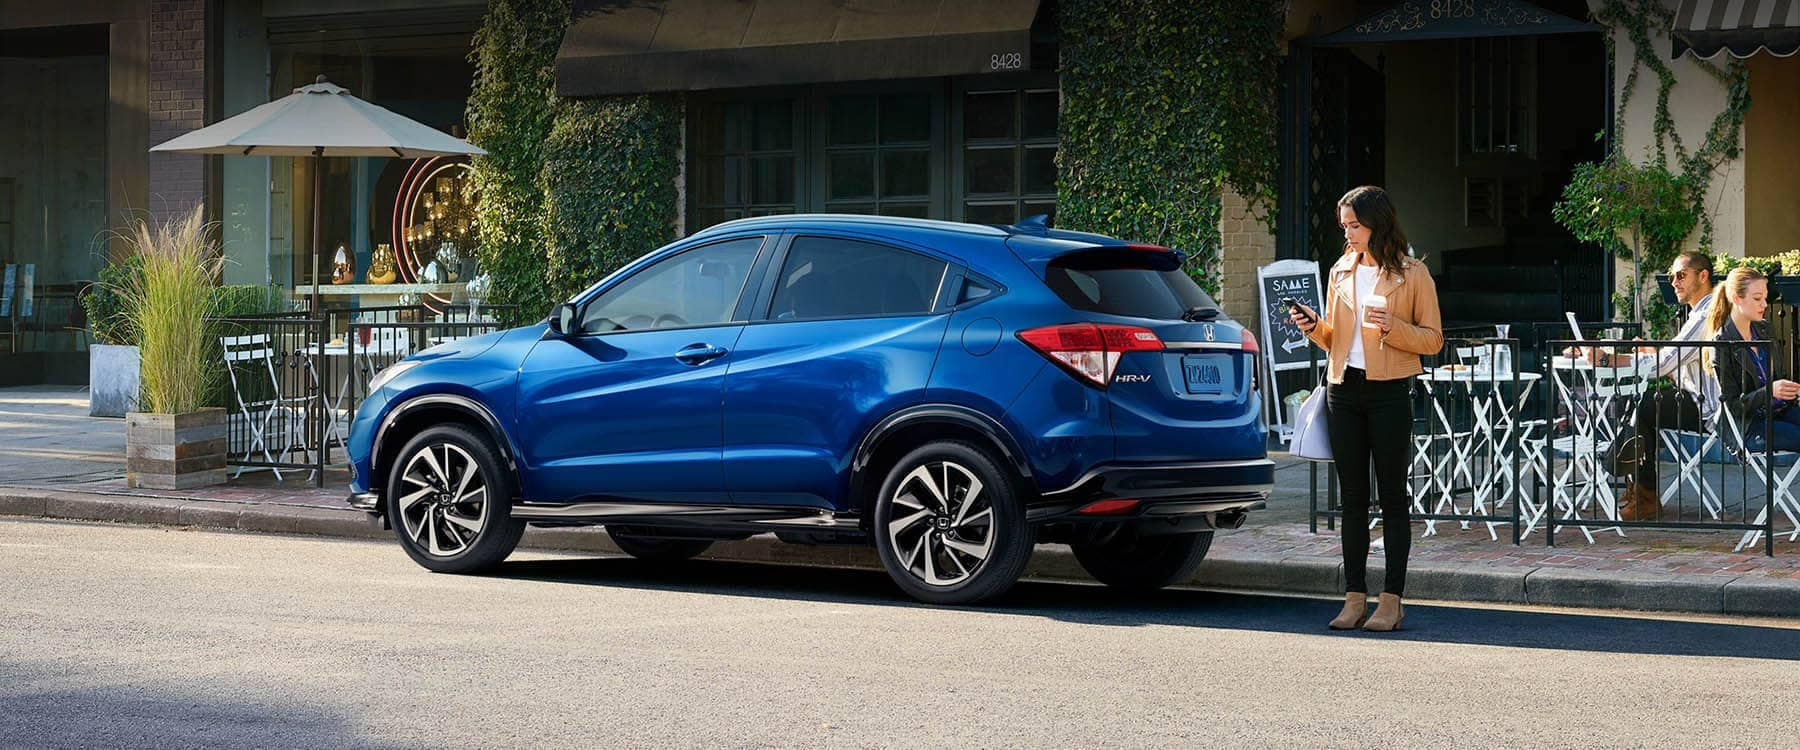 2019 Honda HR-V Parked Outside a Restaurant